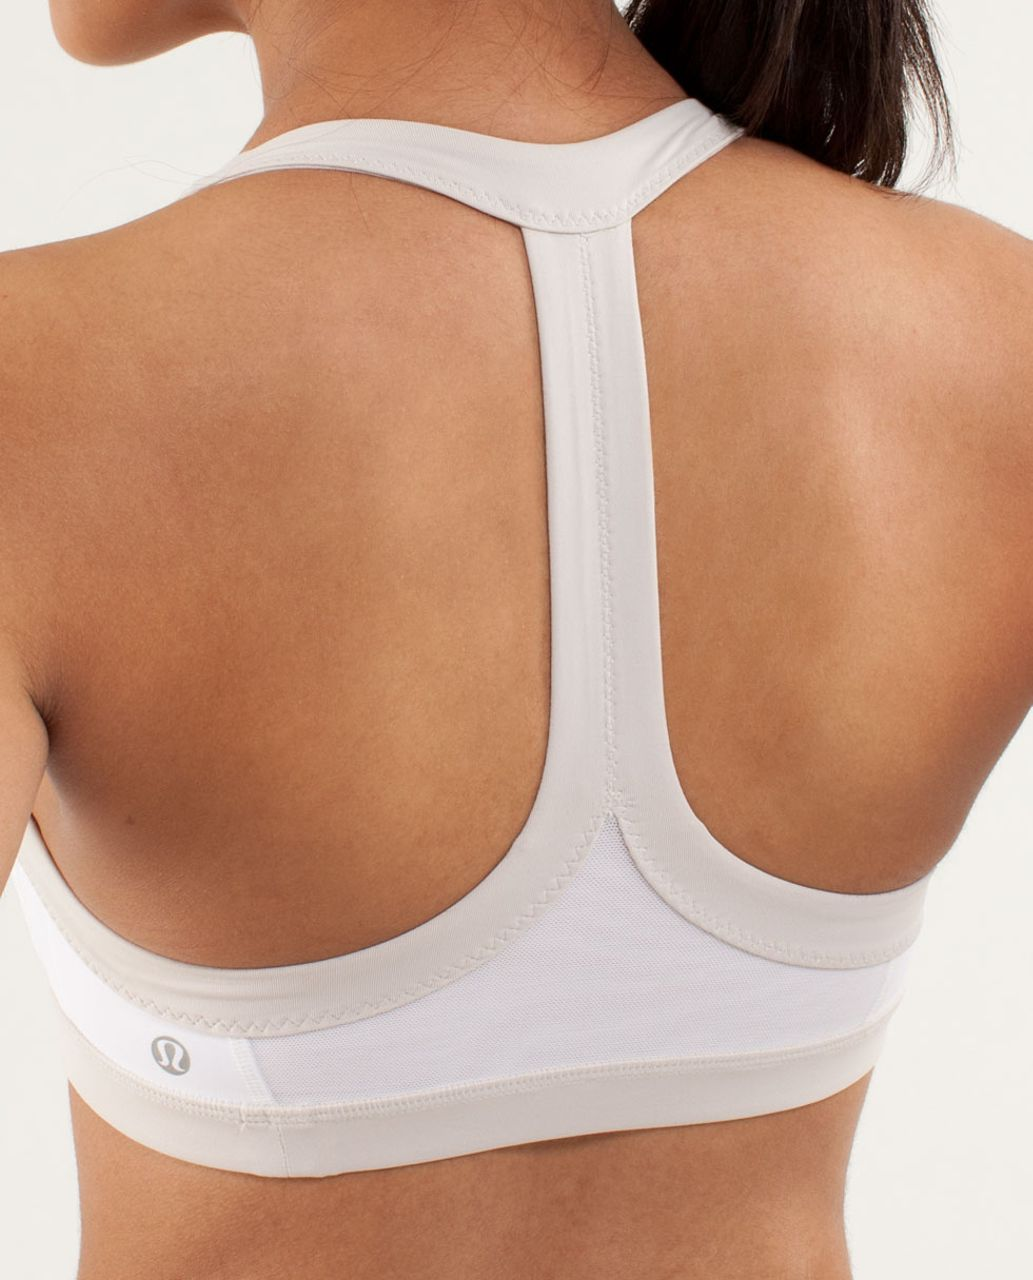 Lululemon Run:  Sprint Bra - White / Dune